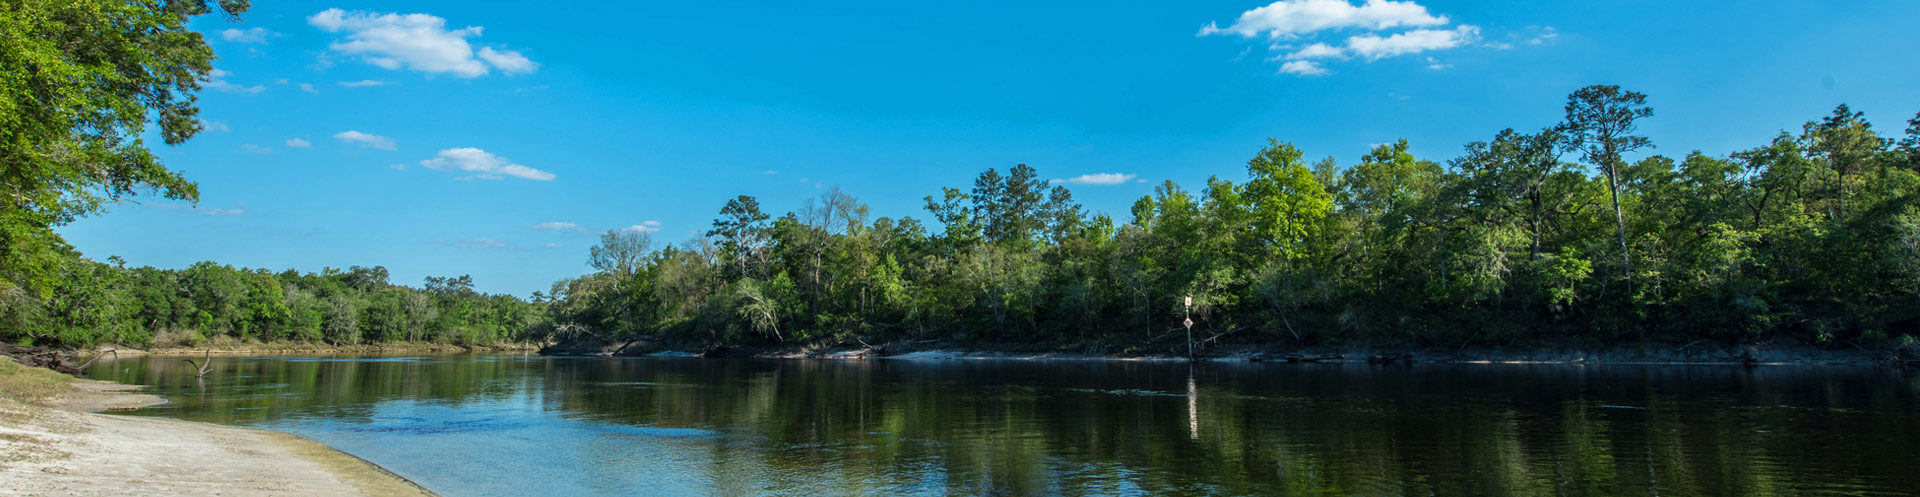 Suwannee river shoreline during day